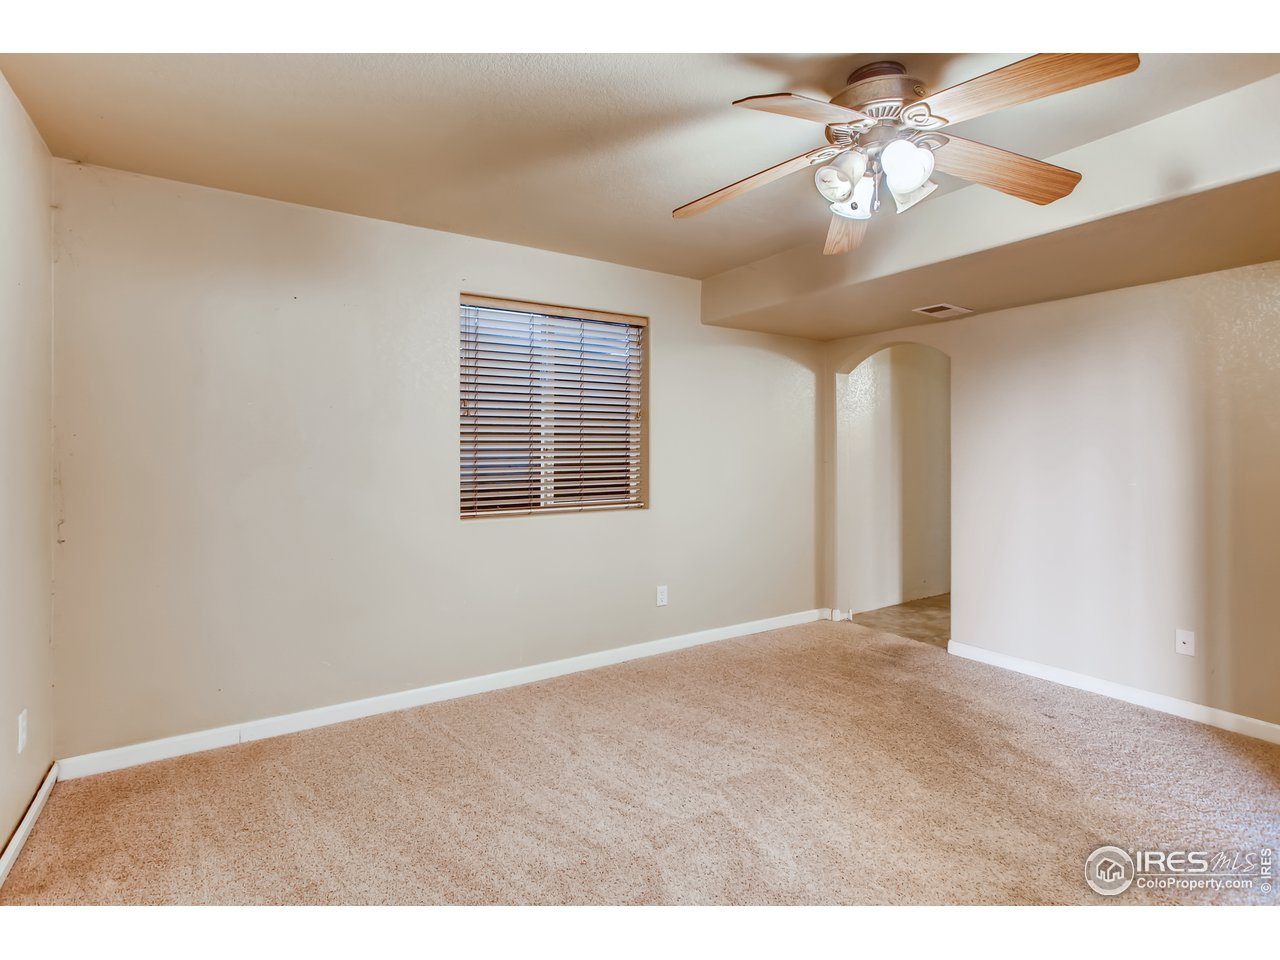 2nd Primary Suite in Basement 14 x 14